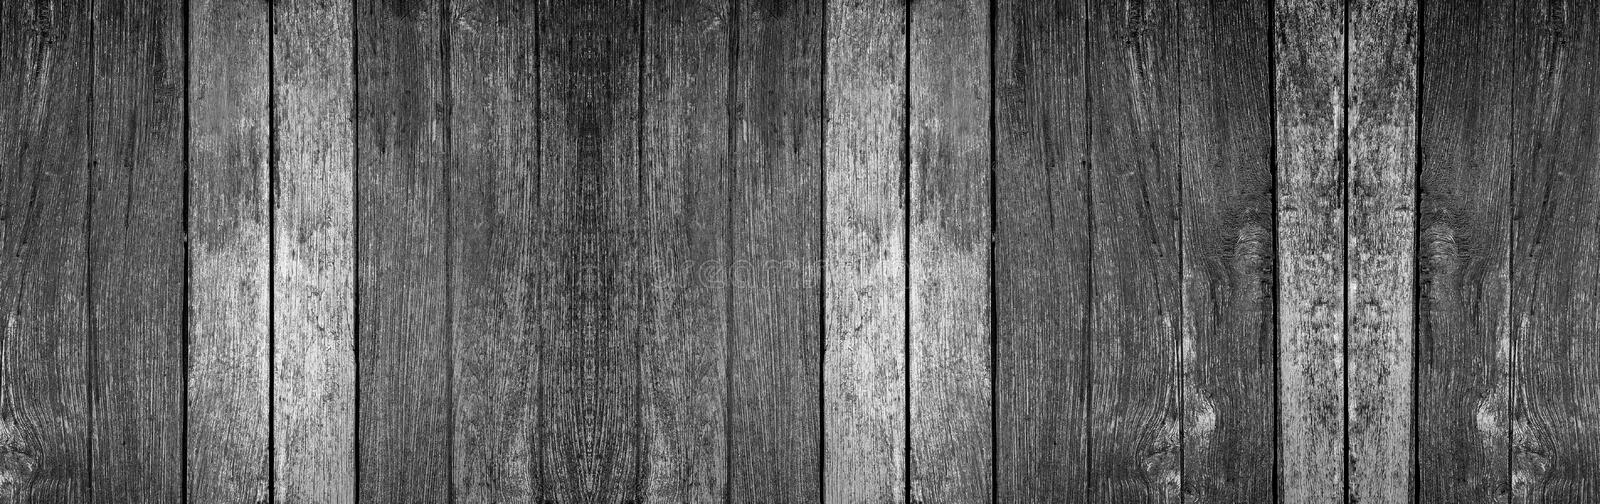 Panorama old wood wall with beautiful vintage black and white wooden texture background. For design royalty free stock photos